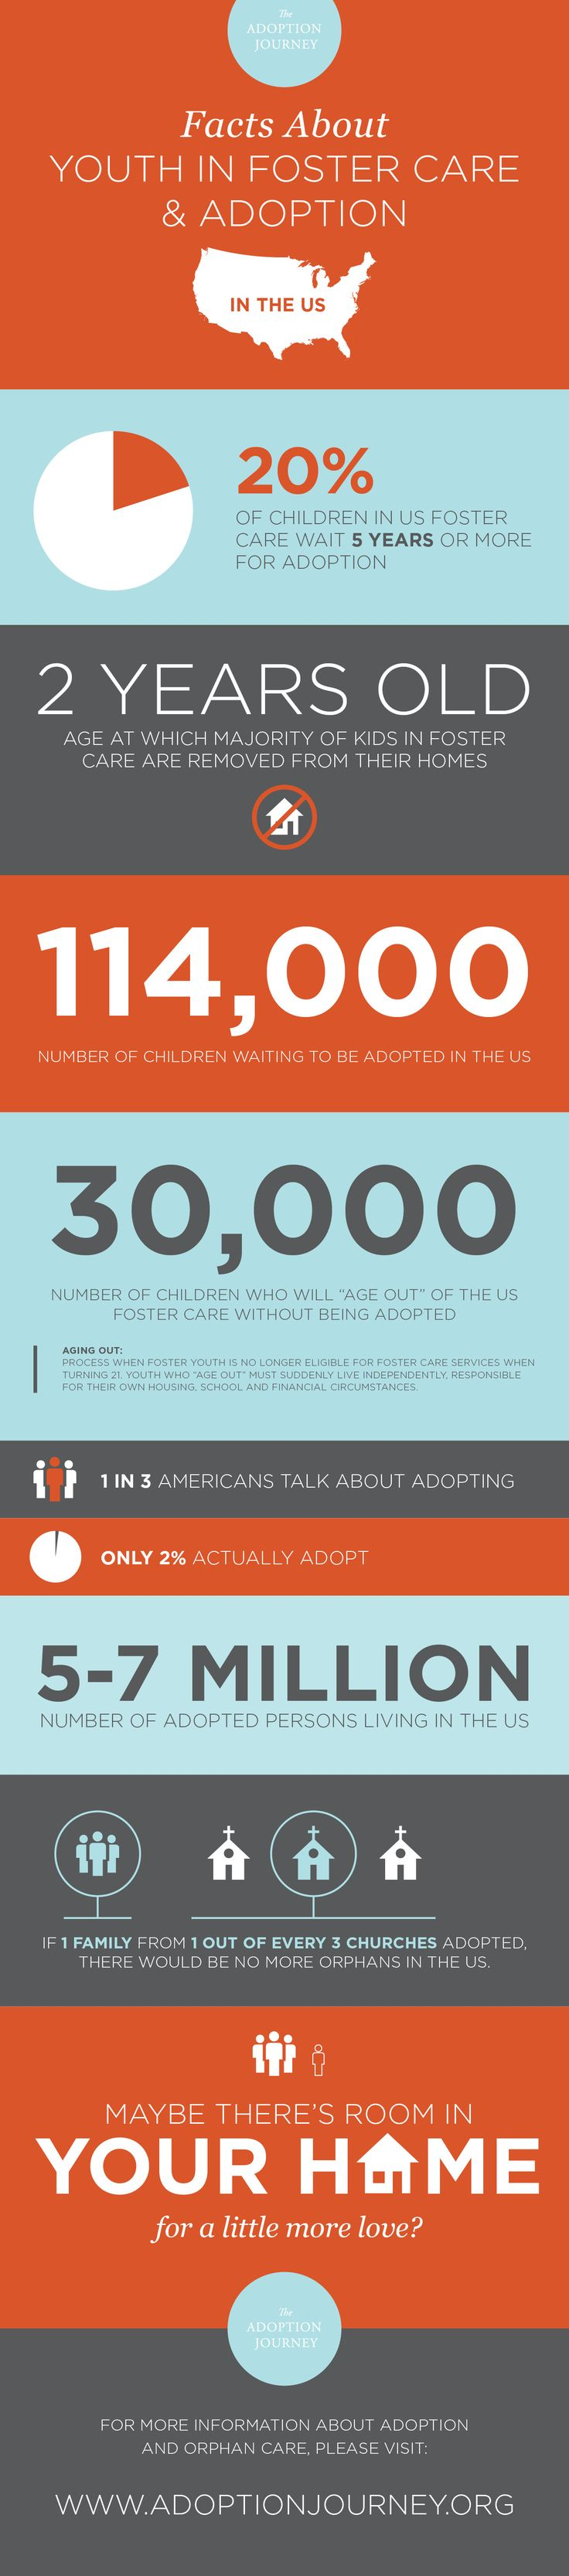 Foster Care Youth & Orphan Care Stats WOW! I can't believe 1 in 3 Americans talk about adopting and only 2% actually do!